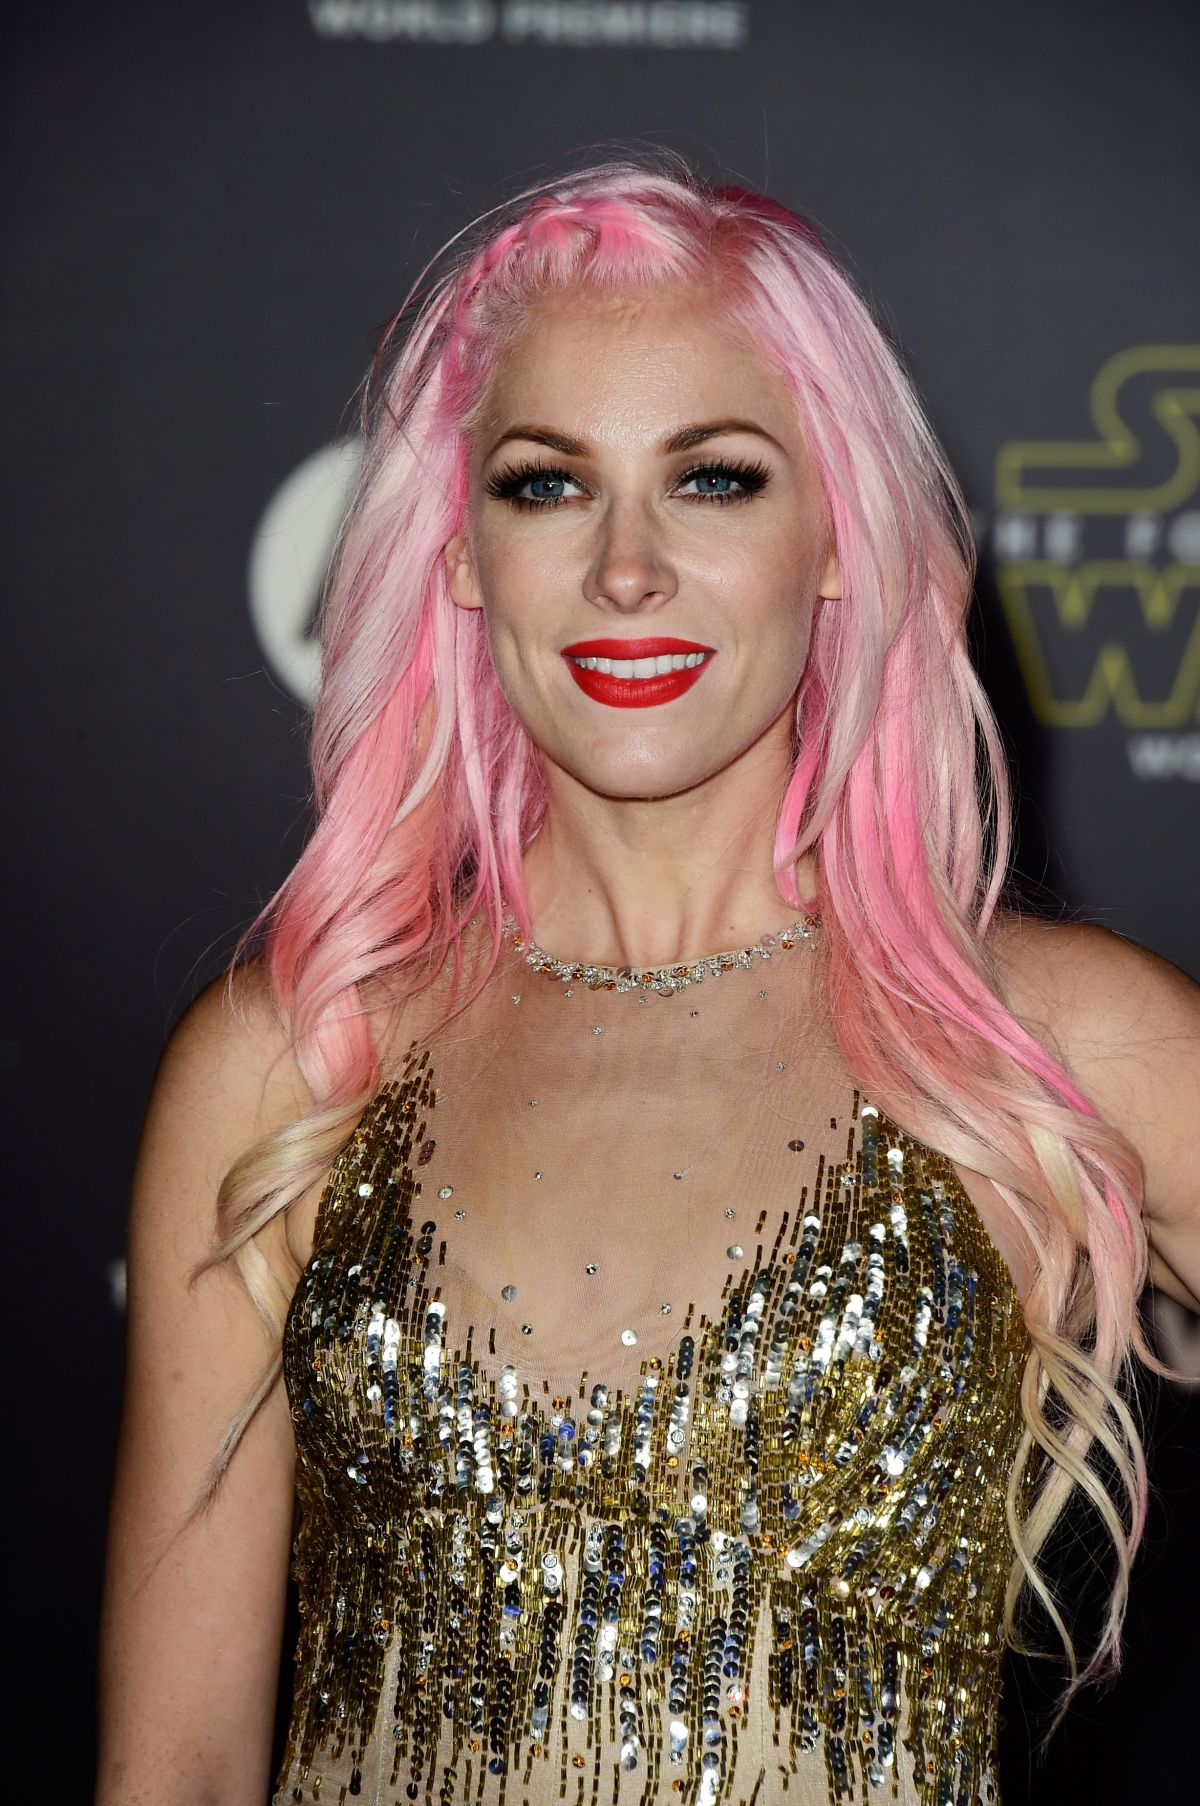 Bonnie McKee | News, Music Performances and Show Video ...